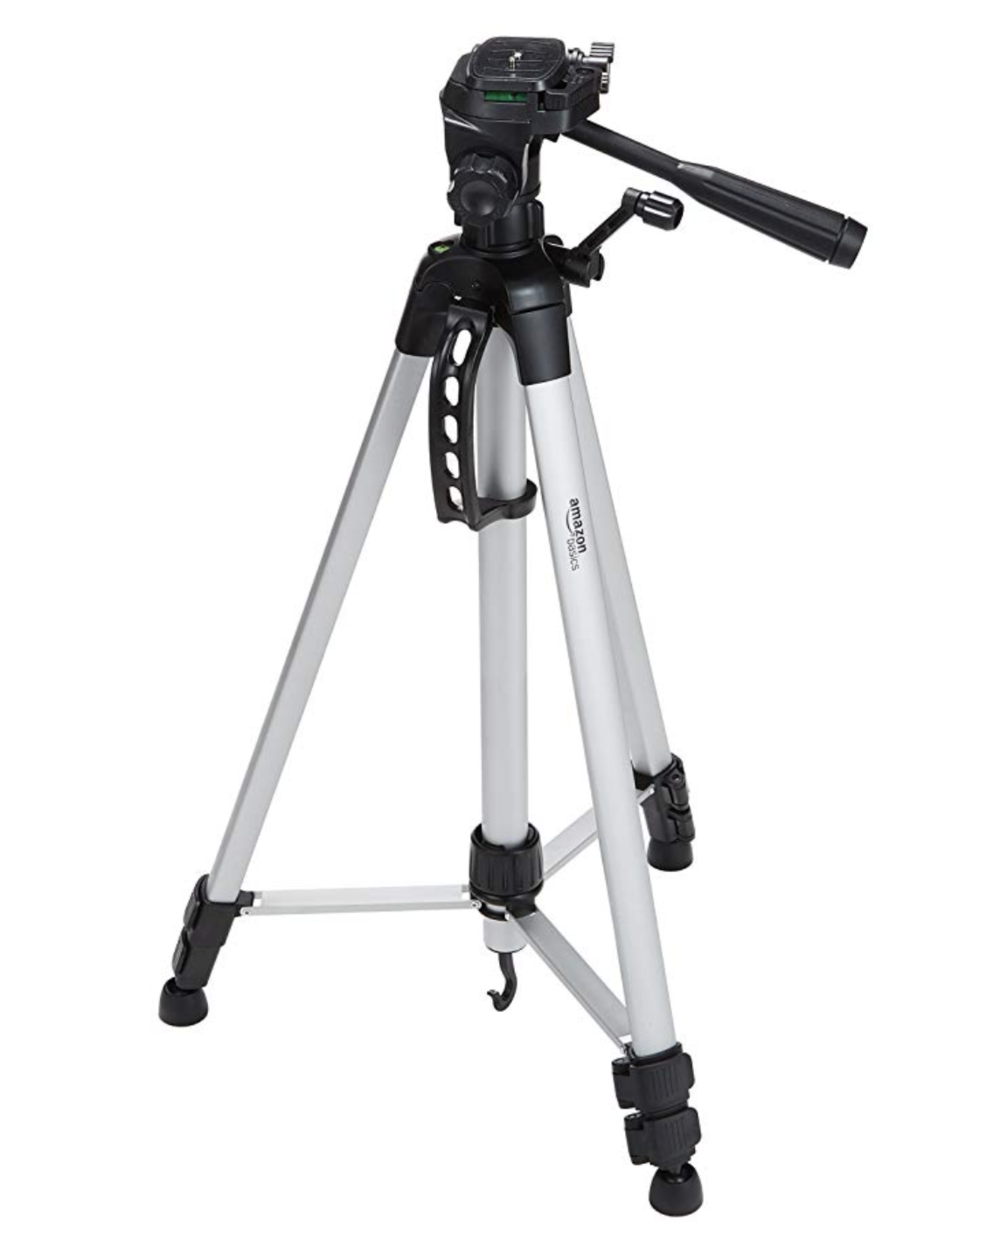 AmazonBasics 60-Inch Lightweight Tripod with Bag   I use a lightweight portable tripod for so many things these days. This is a very affordable option for using with cameras and pocket projectors. I also have a small tripod adaptor to use with my iphone camera - both for still shots and video.